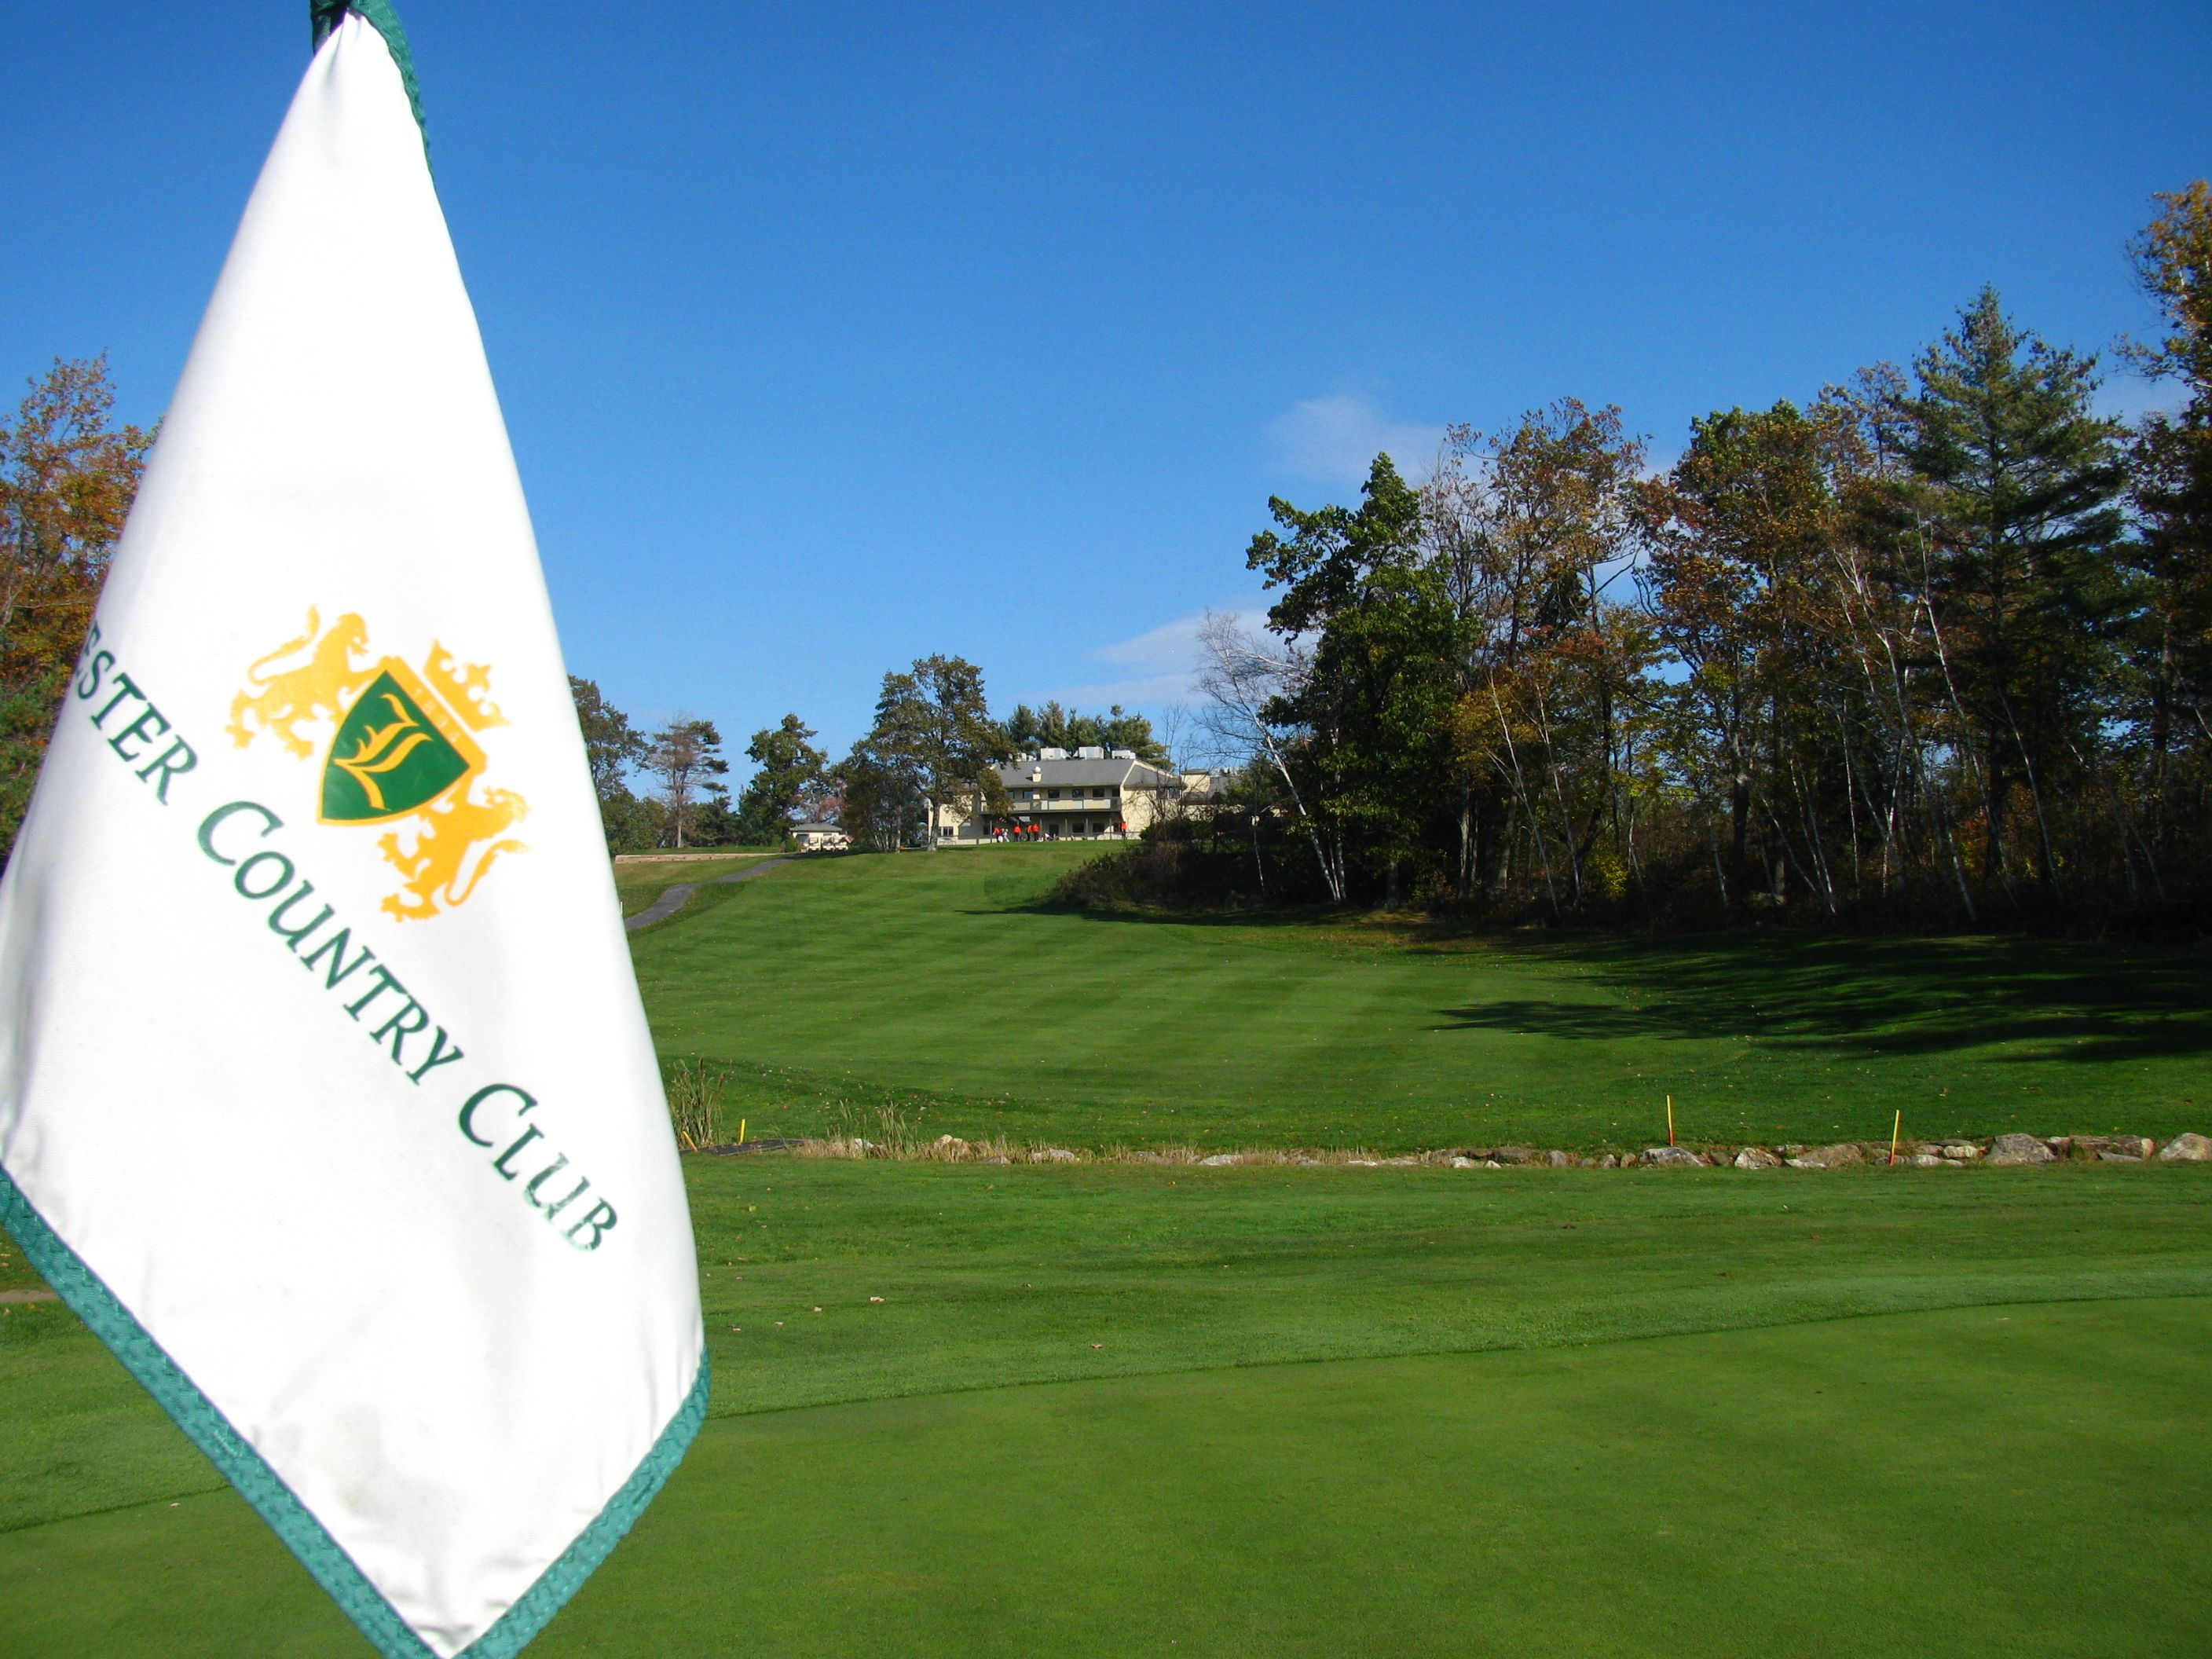 Wachusett Country Club West Boylston, Ma - Golf Courses Ive